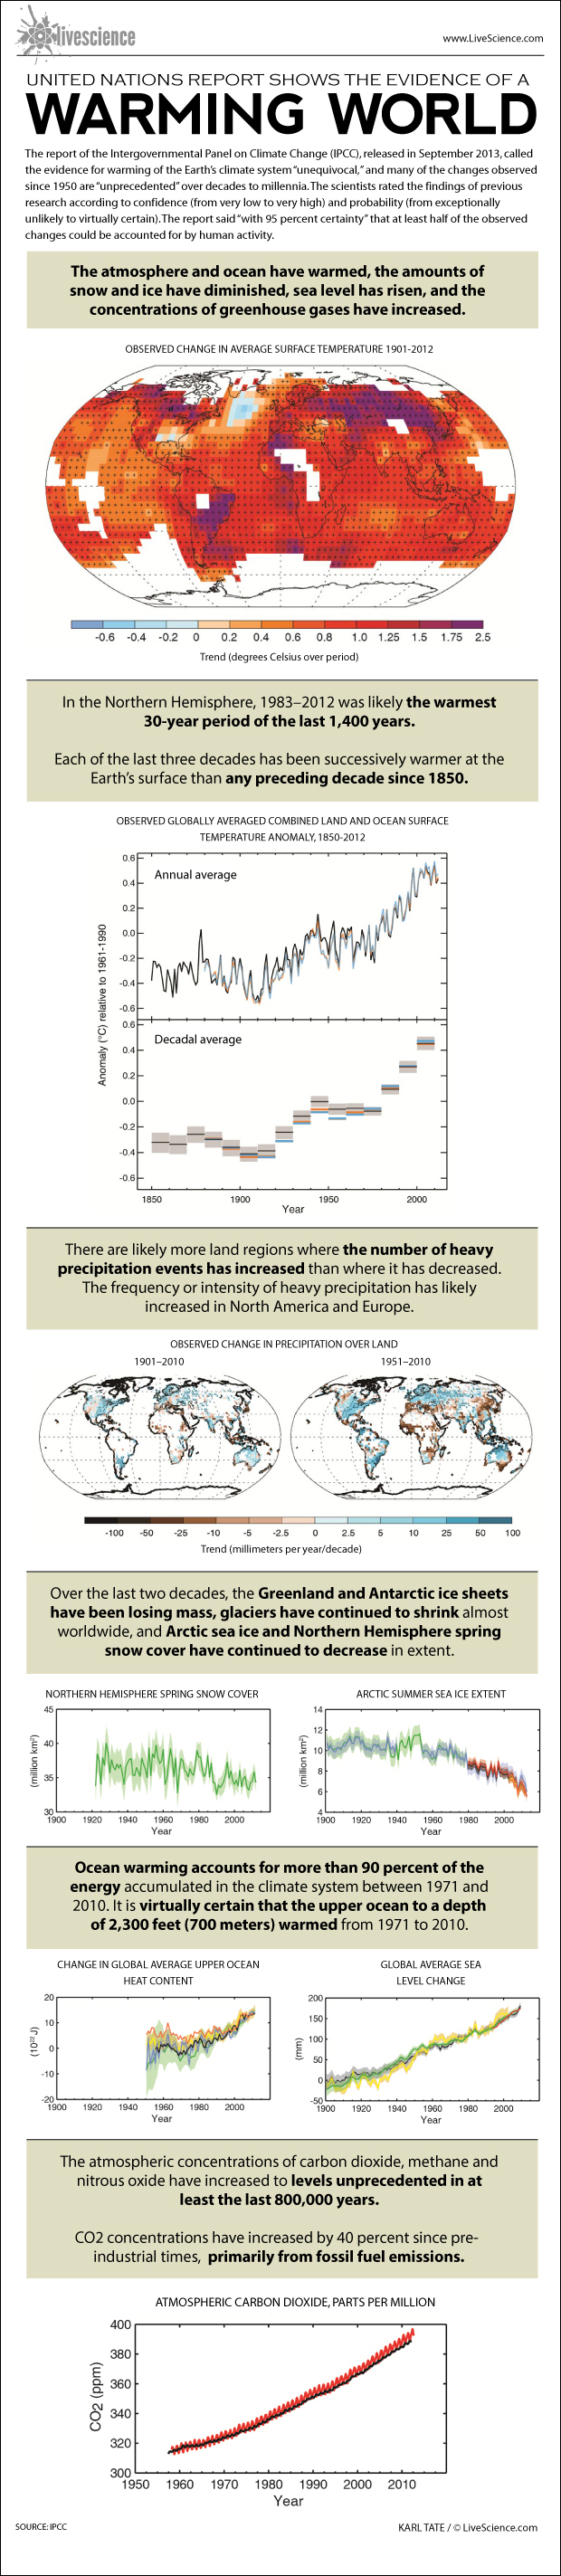 ipcc-global-warming-climate-change-report-130927c-02